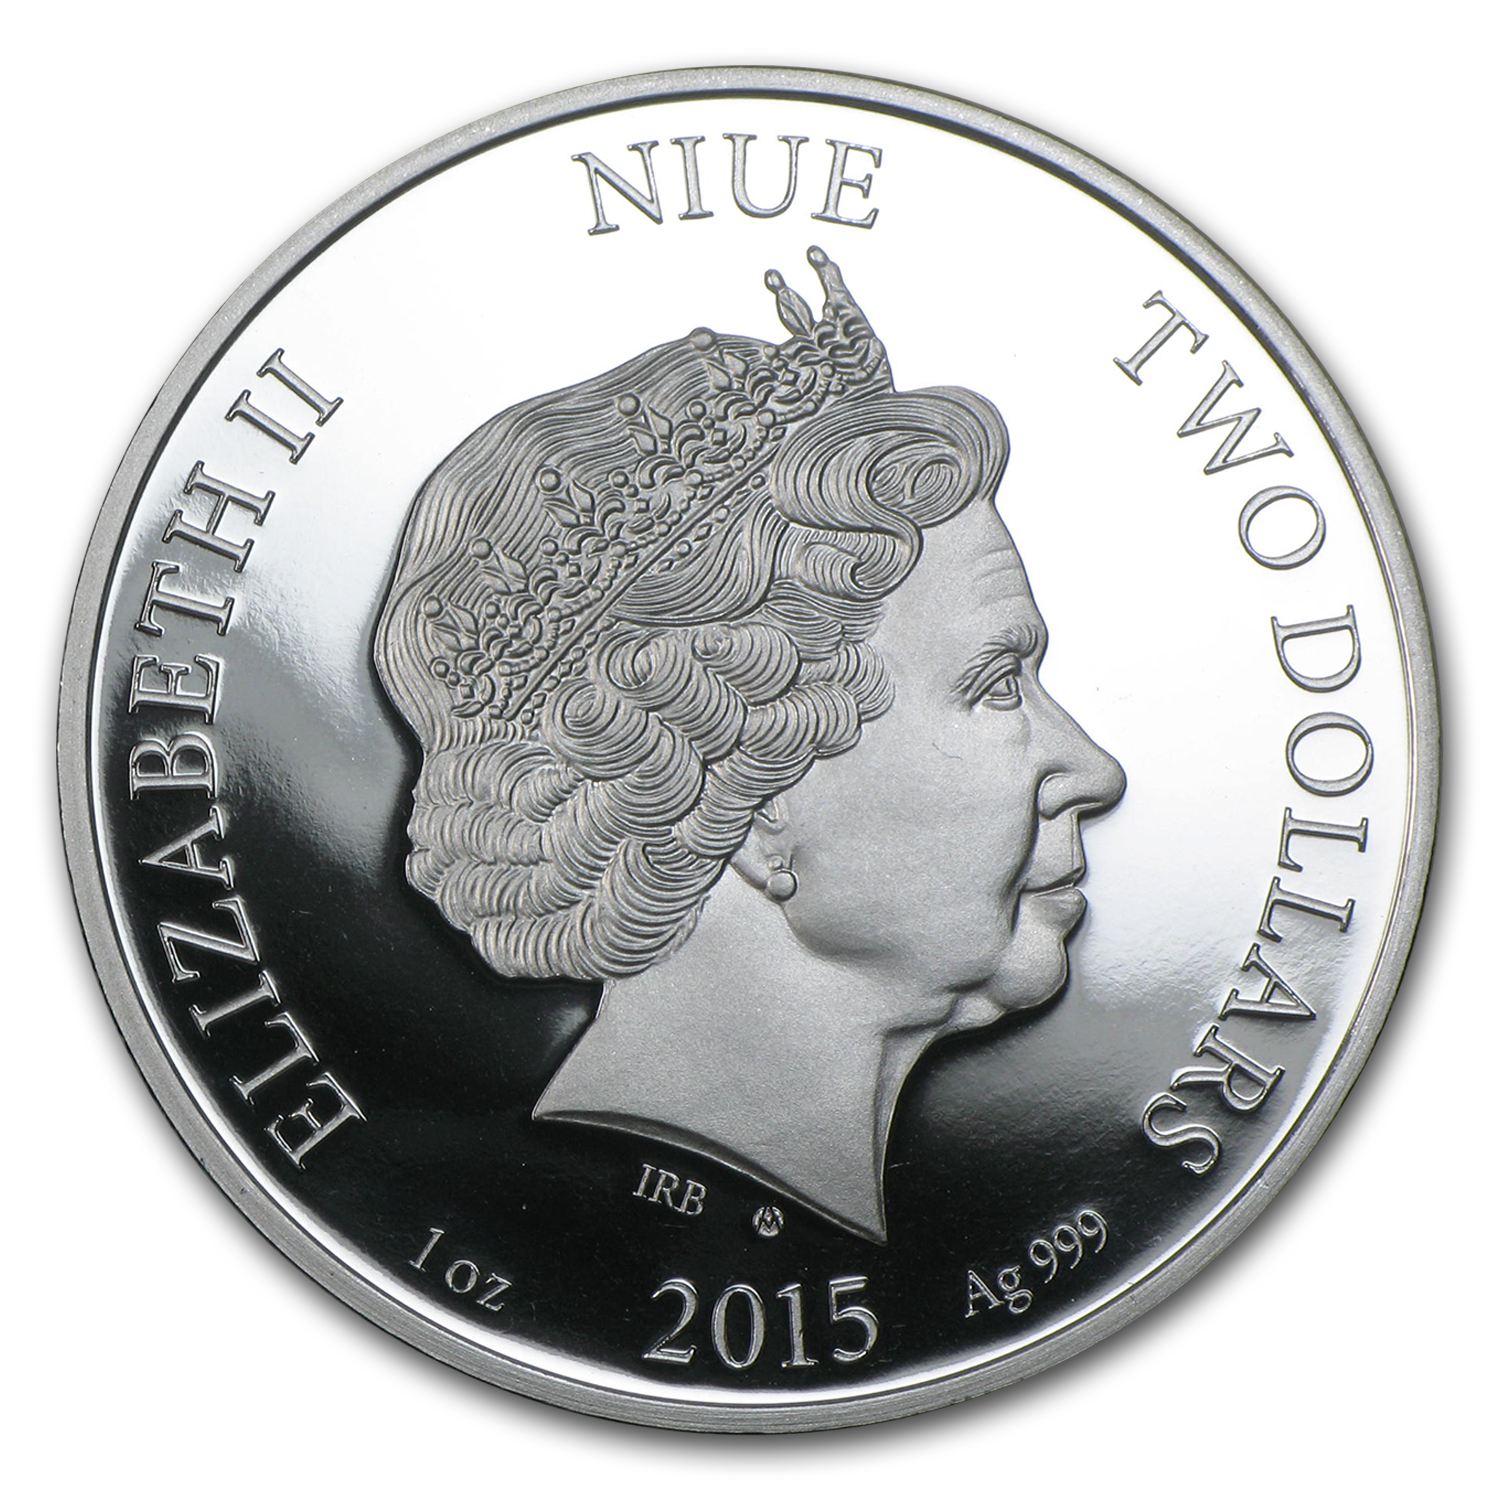 2015 Niue Silver First Chromadepth 3D Coin